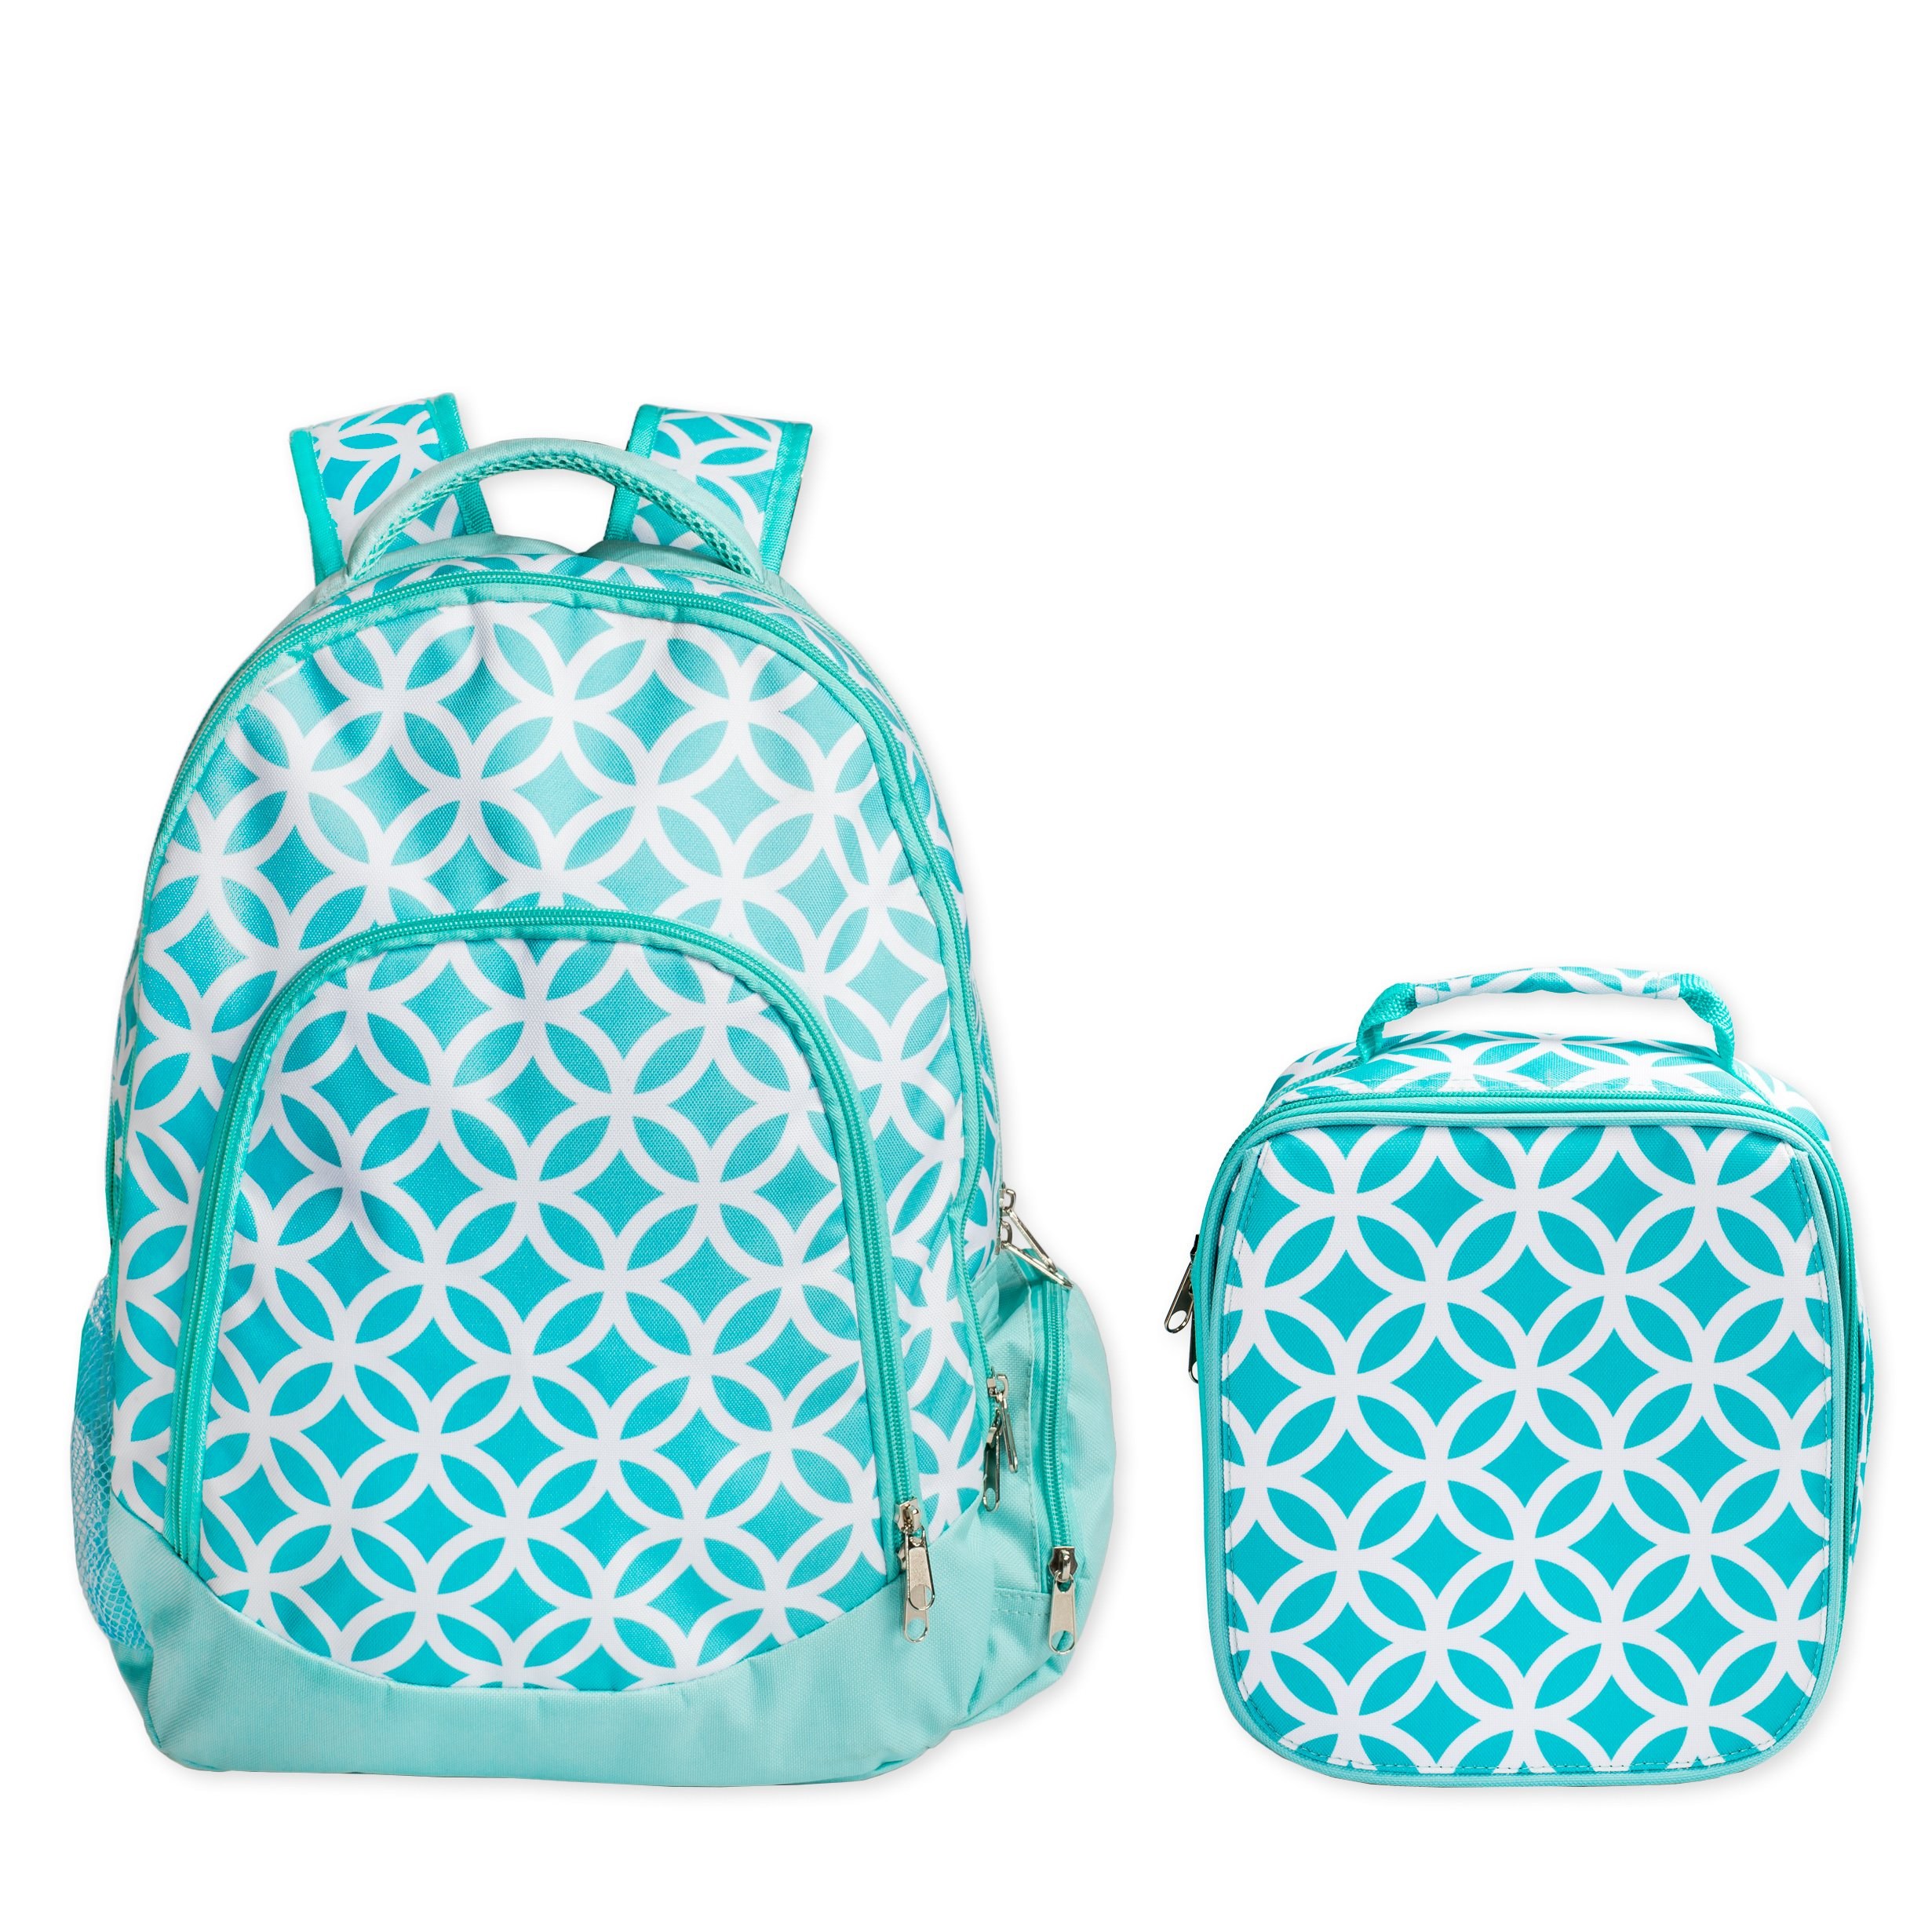 Reinforced Design Water Resistant Backpack and Lunch Bag Set (Aqua Sadie) by WB